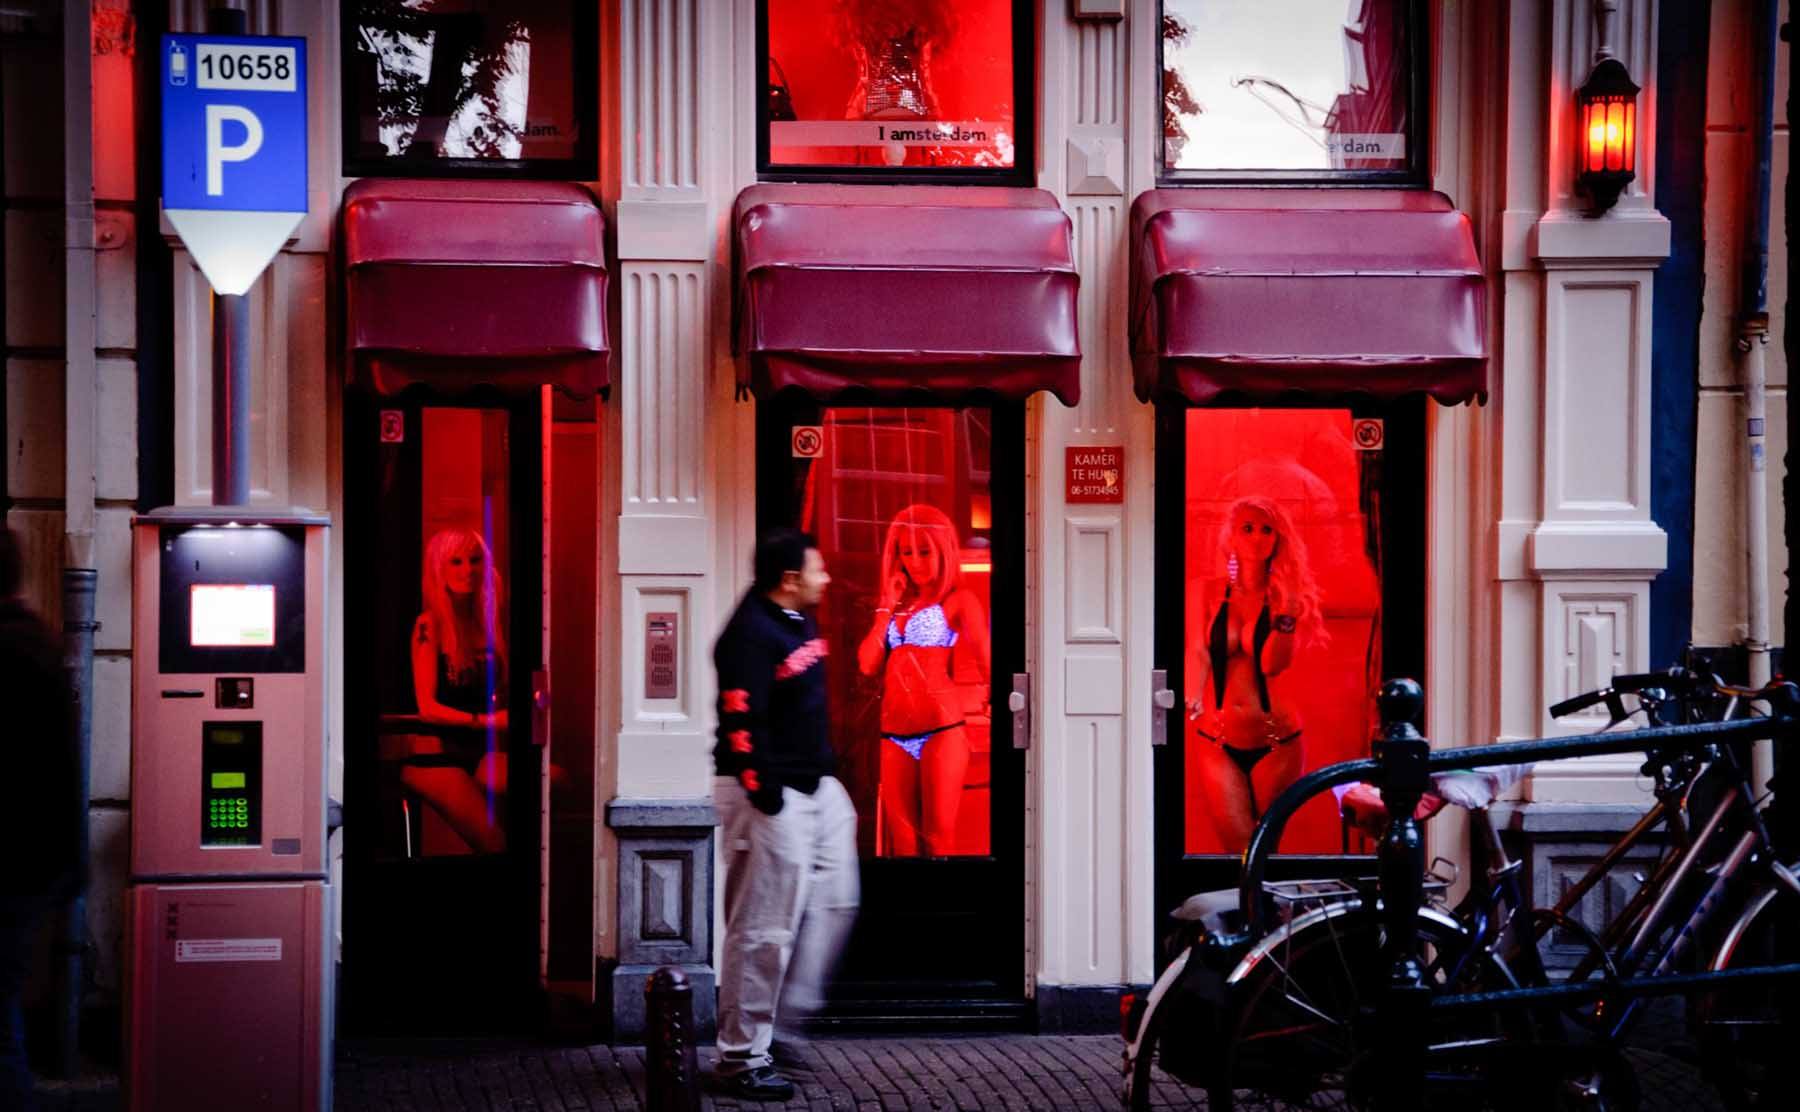 an introduction to the economics behind prostitution in amsterdam Women fleeing poverty get the right to work as prostitutes sex and finance in amsterdam: the economics of prostitution: sex.